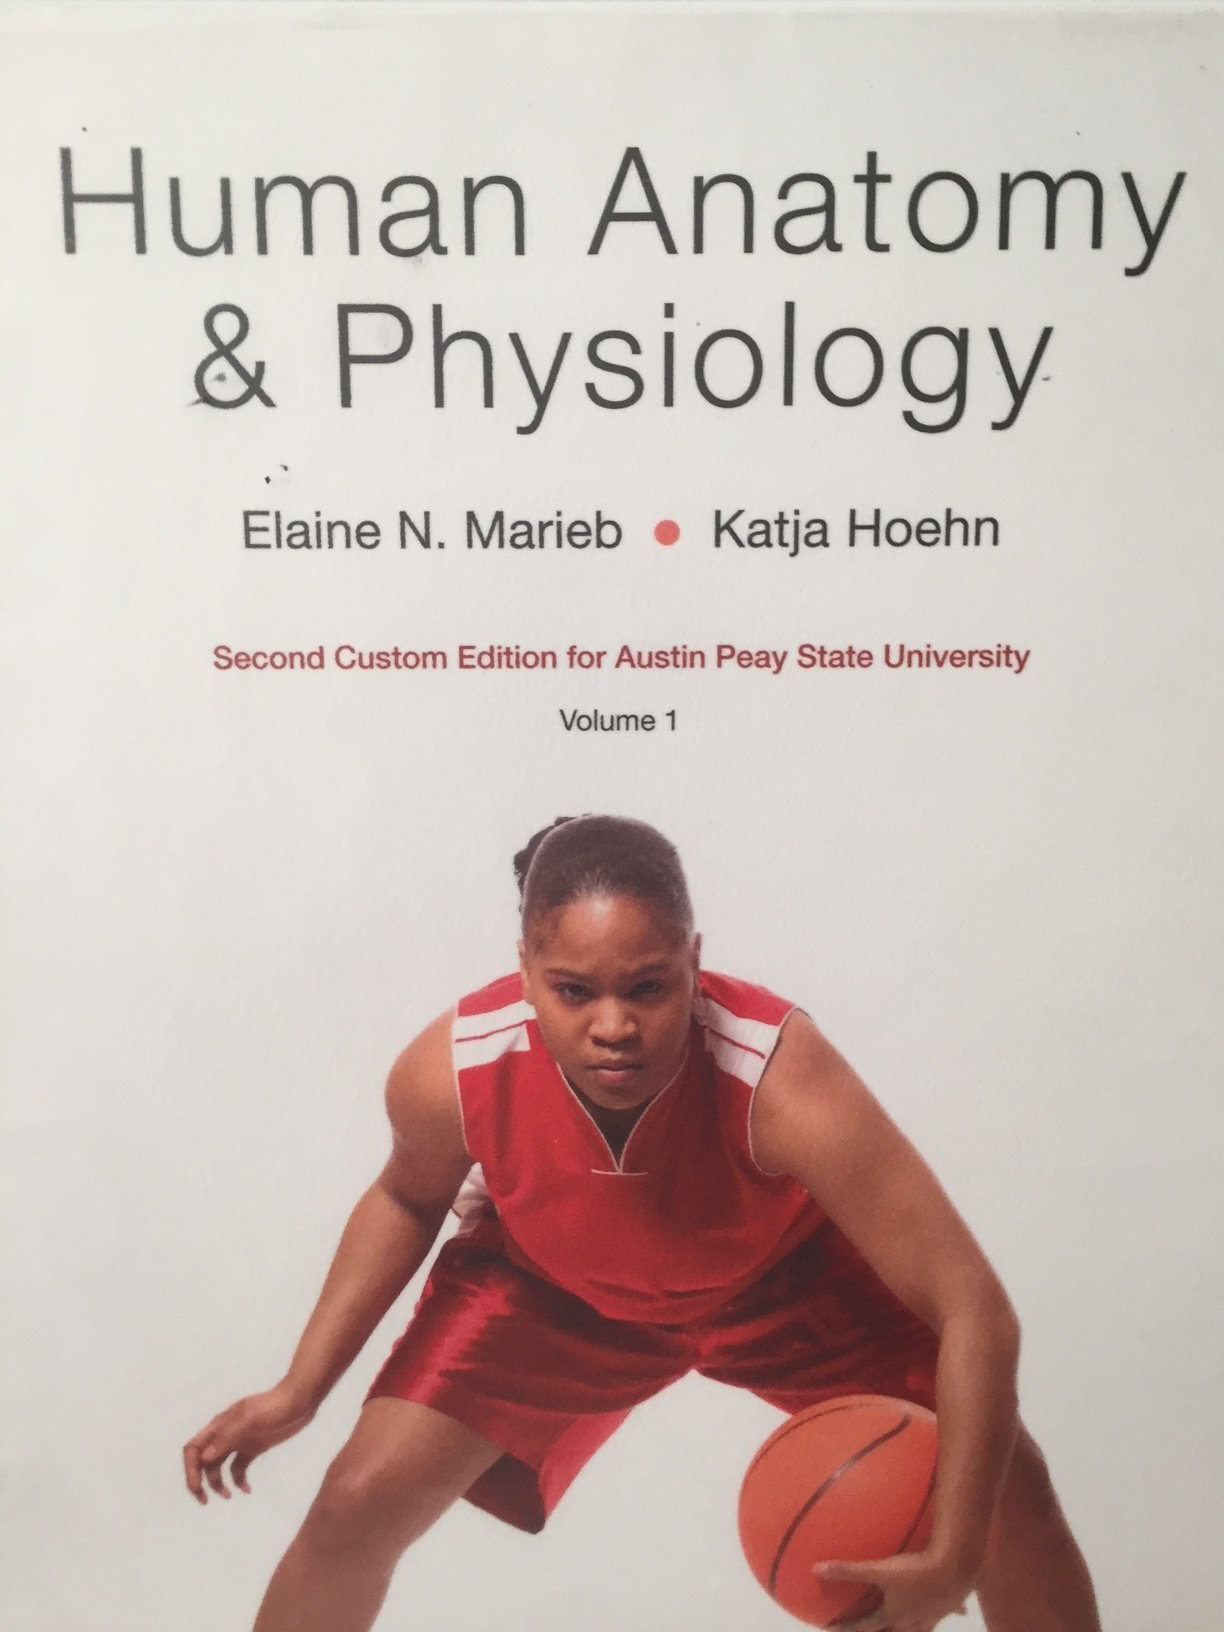 Human Anatomy & Physiology Volume 1 Custom Edition for Austin Peay ...